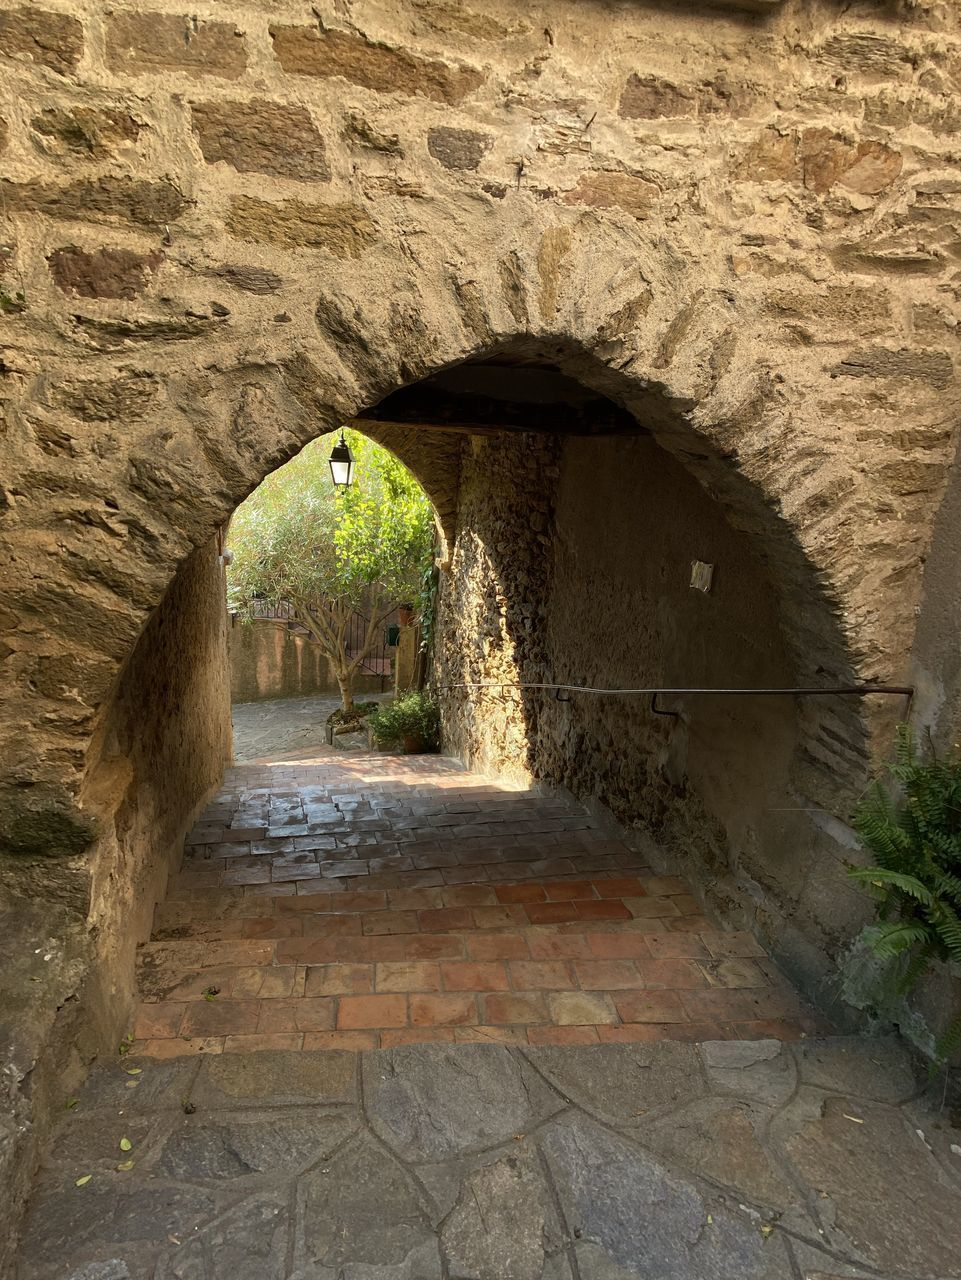 architecture, arch, built structure, the way forward, direction, no people, tunnel, day, nature, building, indoors, wall - building feature, empty, wall, stone wall, history, the past, footpath, plant, arched, light at the end of the tunnel